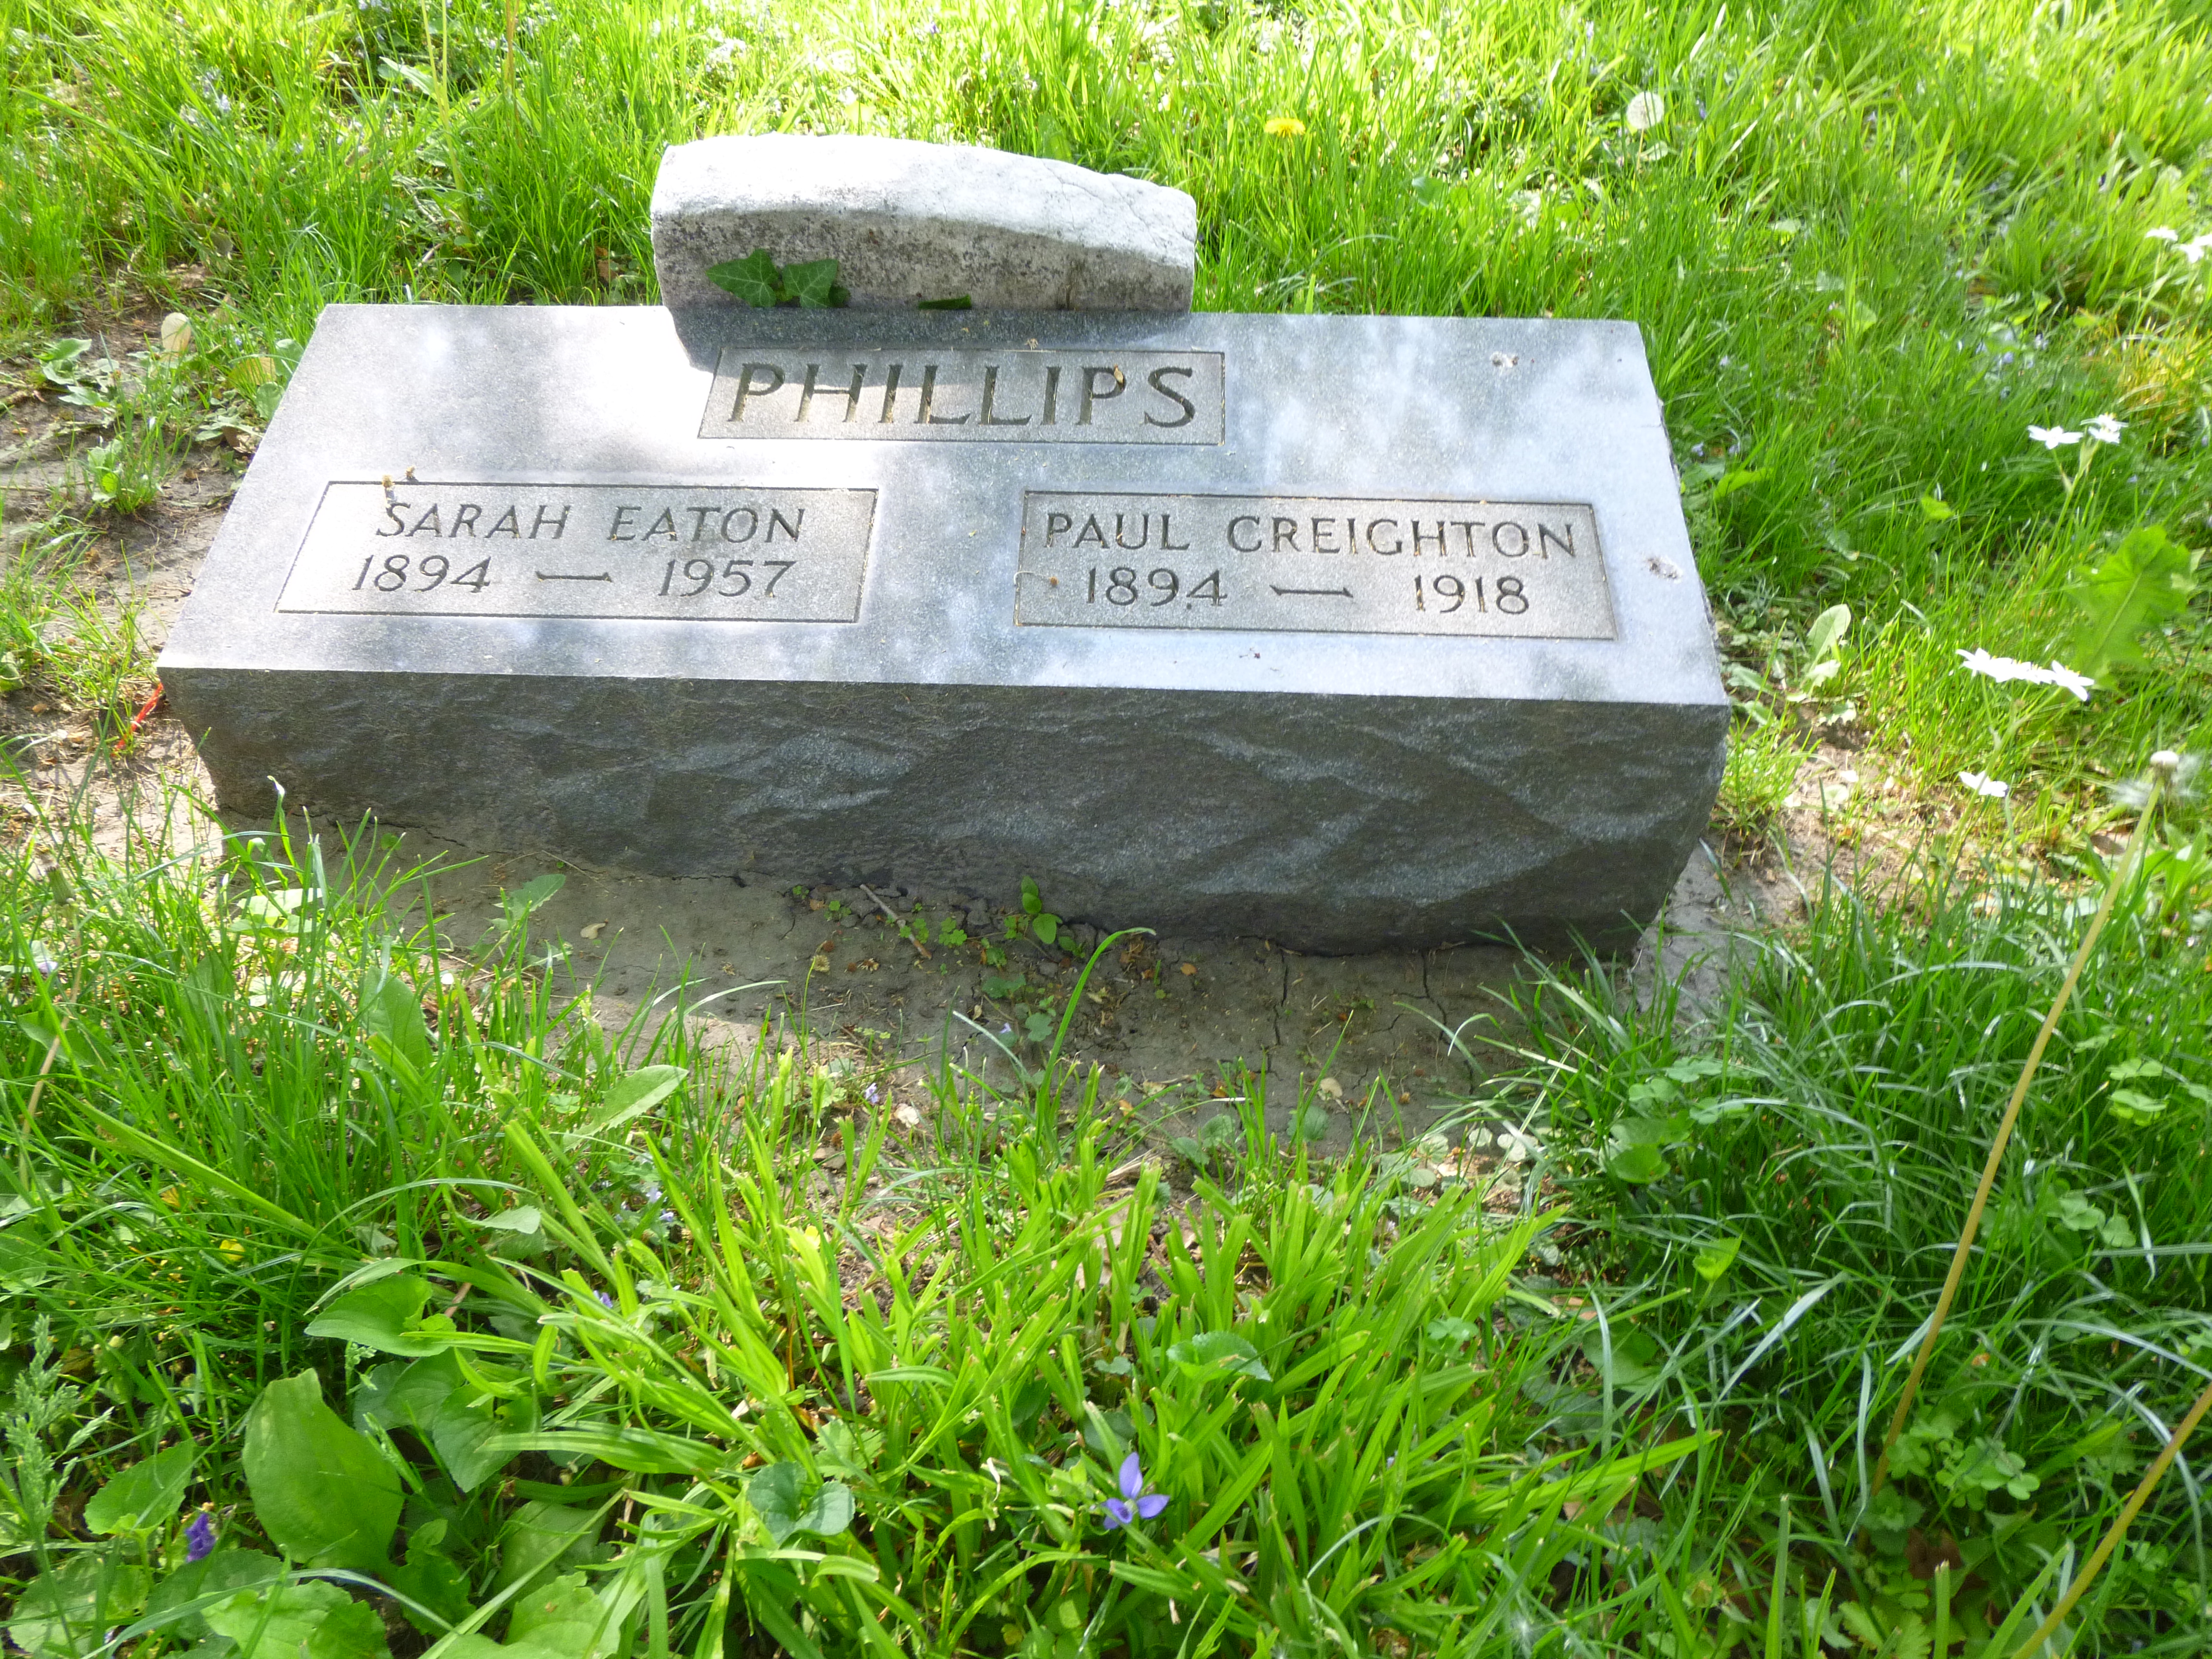 Read more about the article Sarah Eaton Phillips and Paul Creighton Phillips